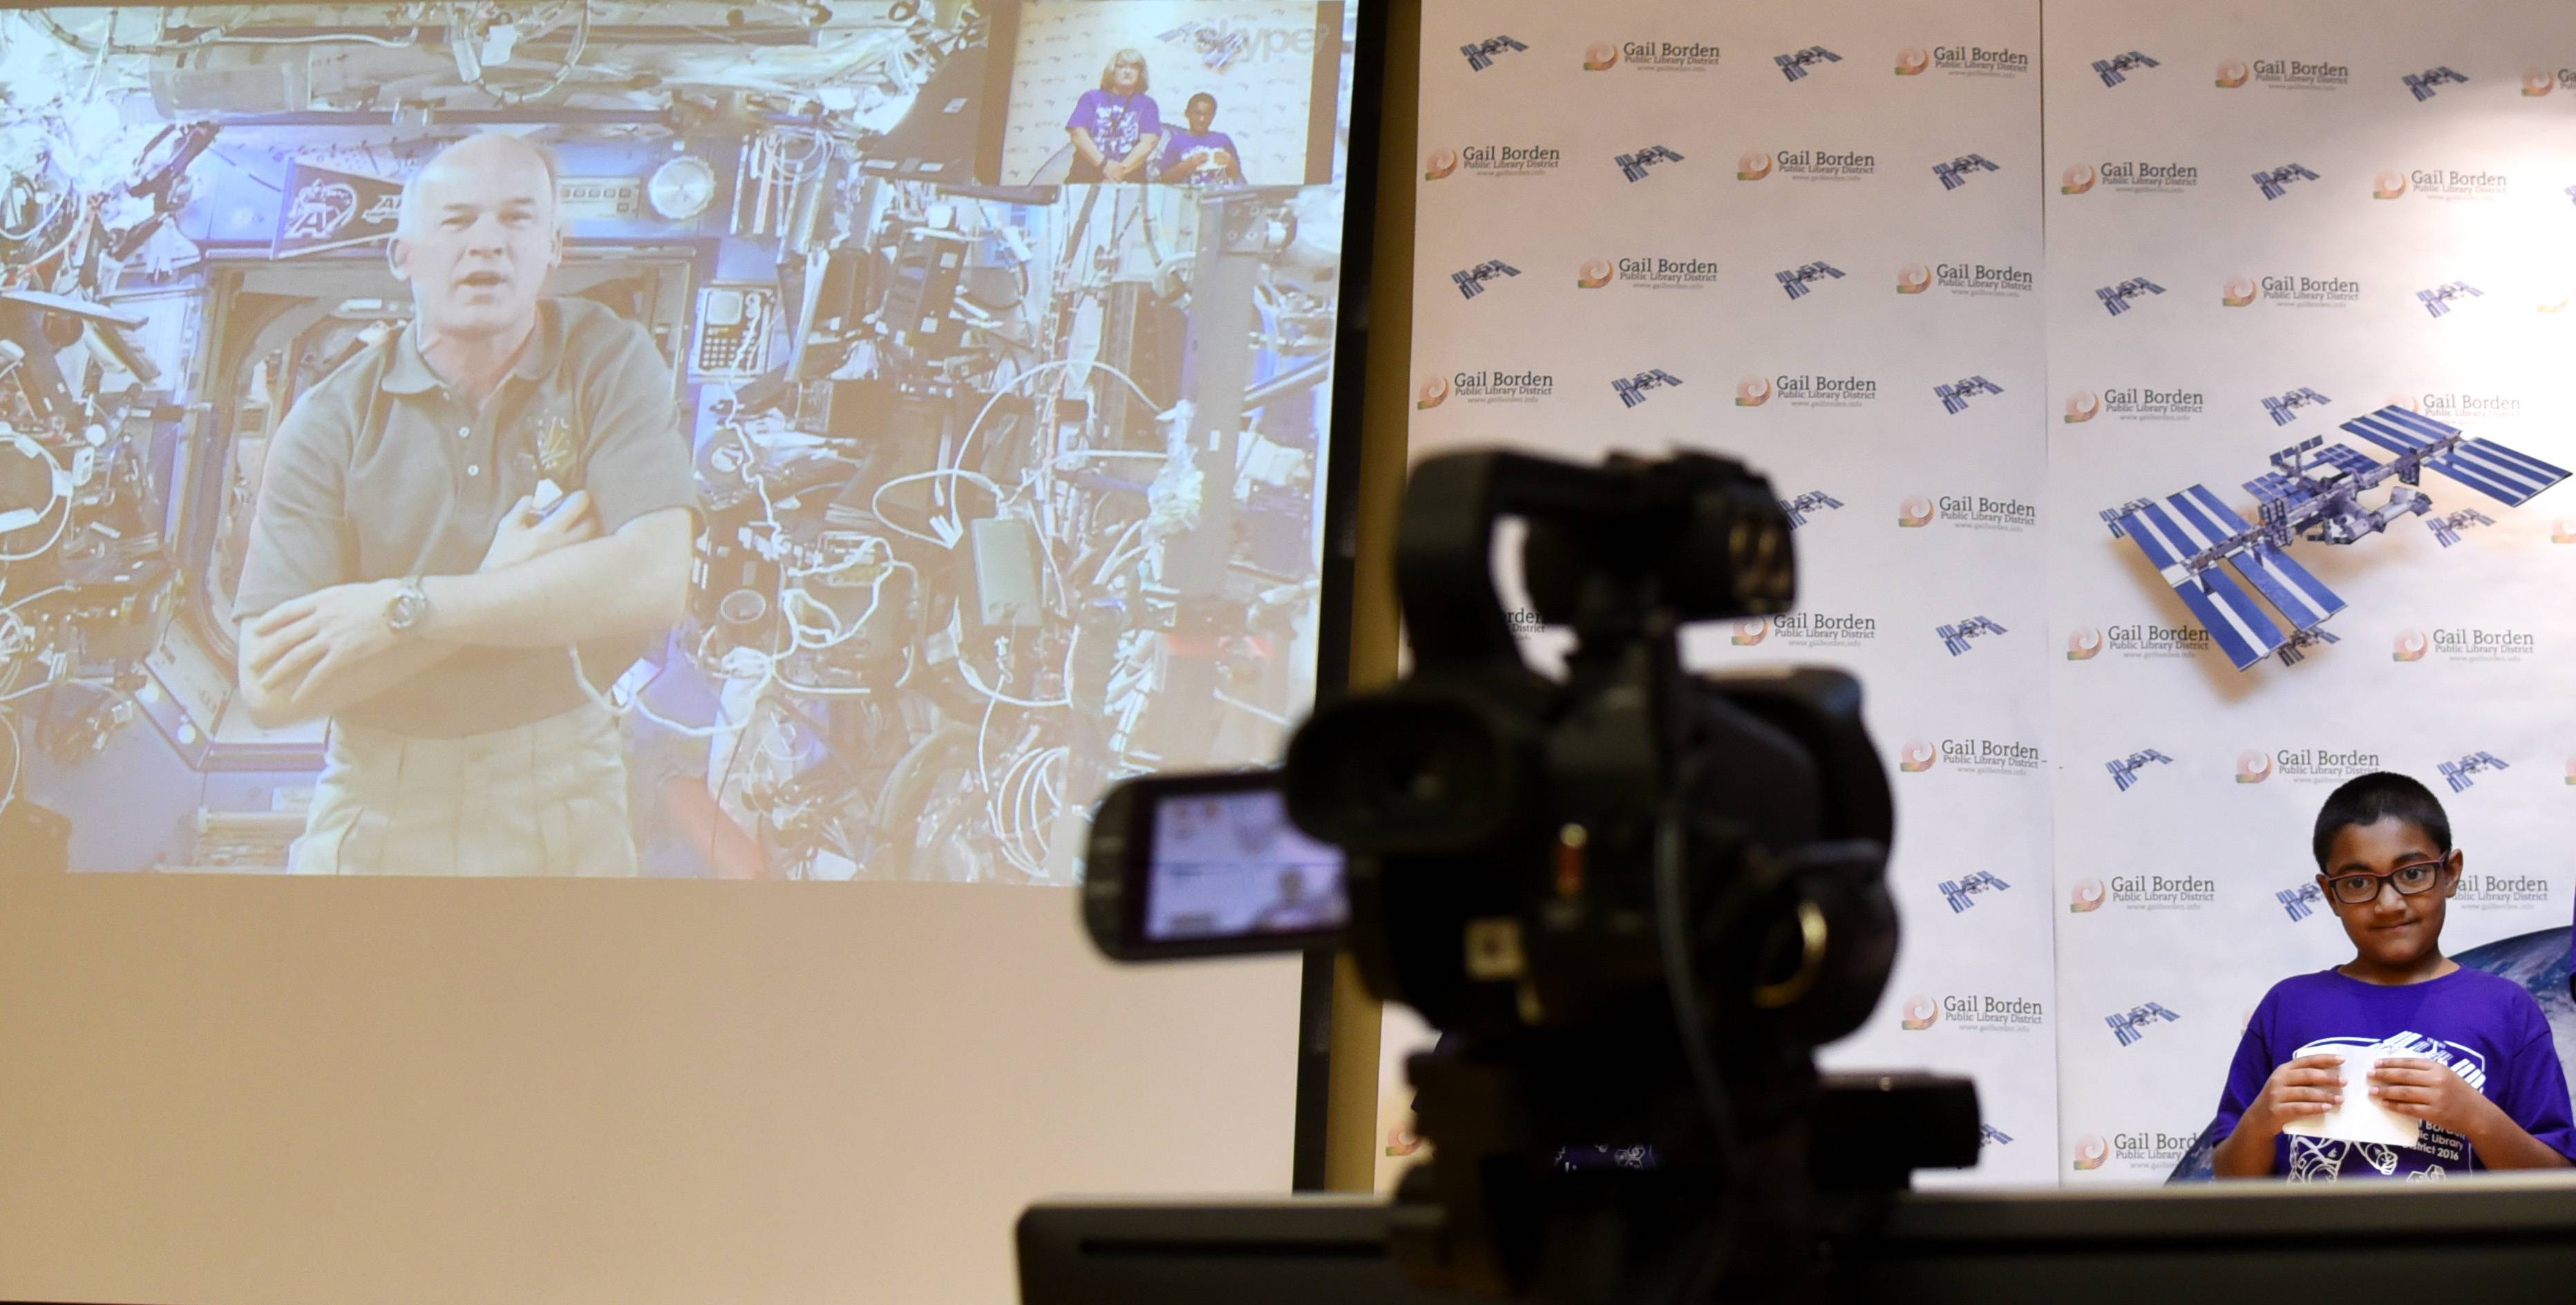 Elgin-area students video chat with astronaut on space station